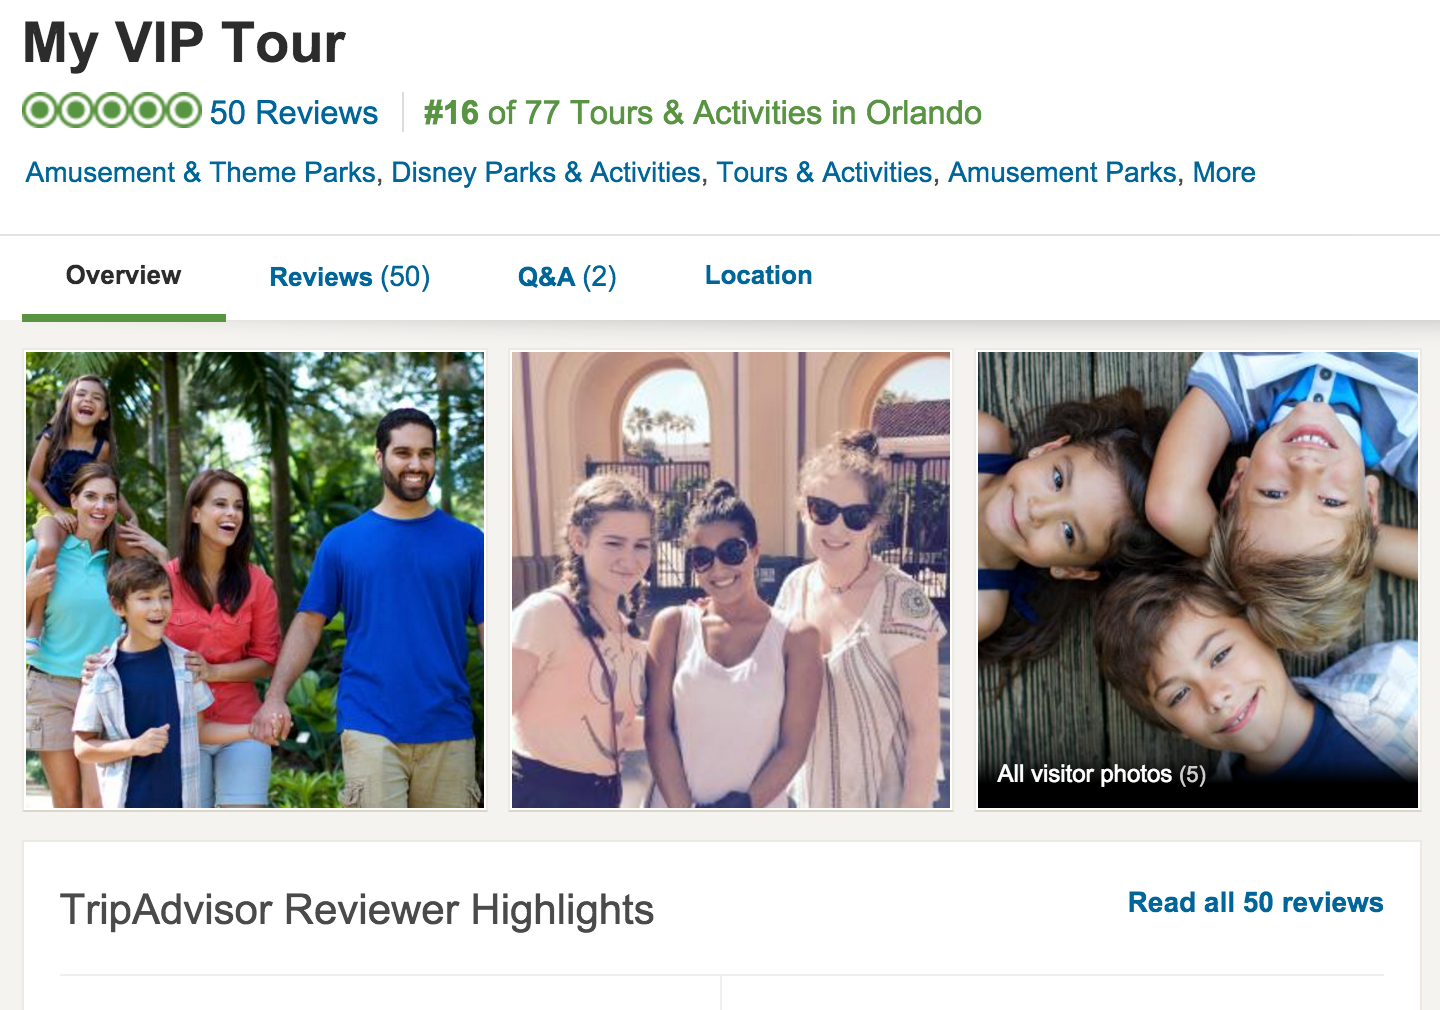 Need 50 more reasons why you should book your Orlando Disney Vacation with My VIP Tour?